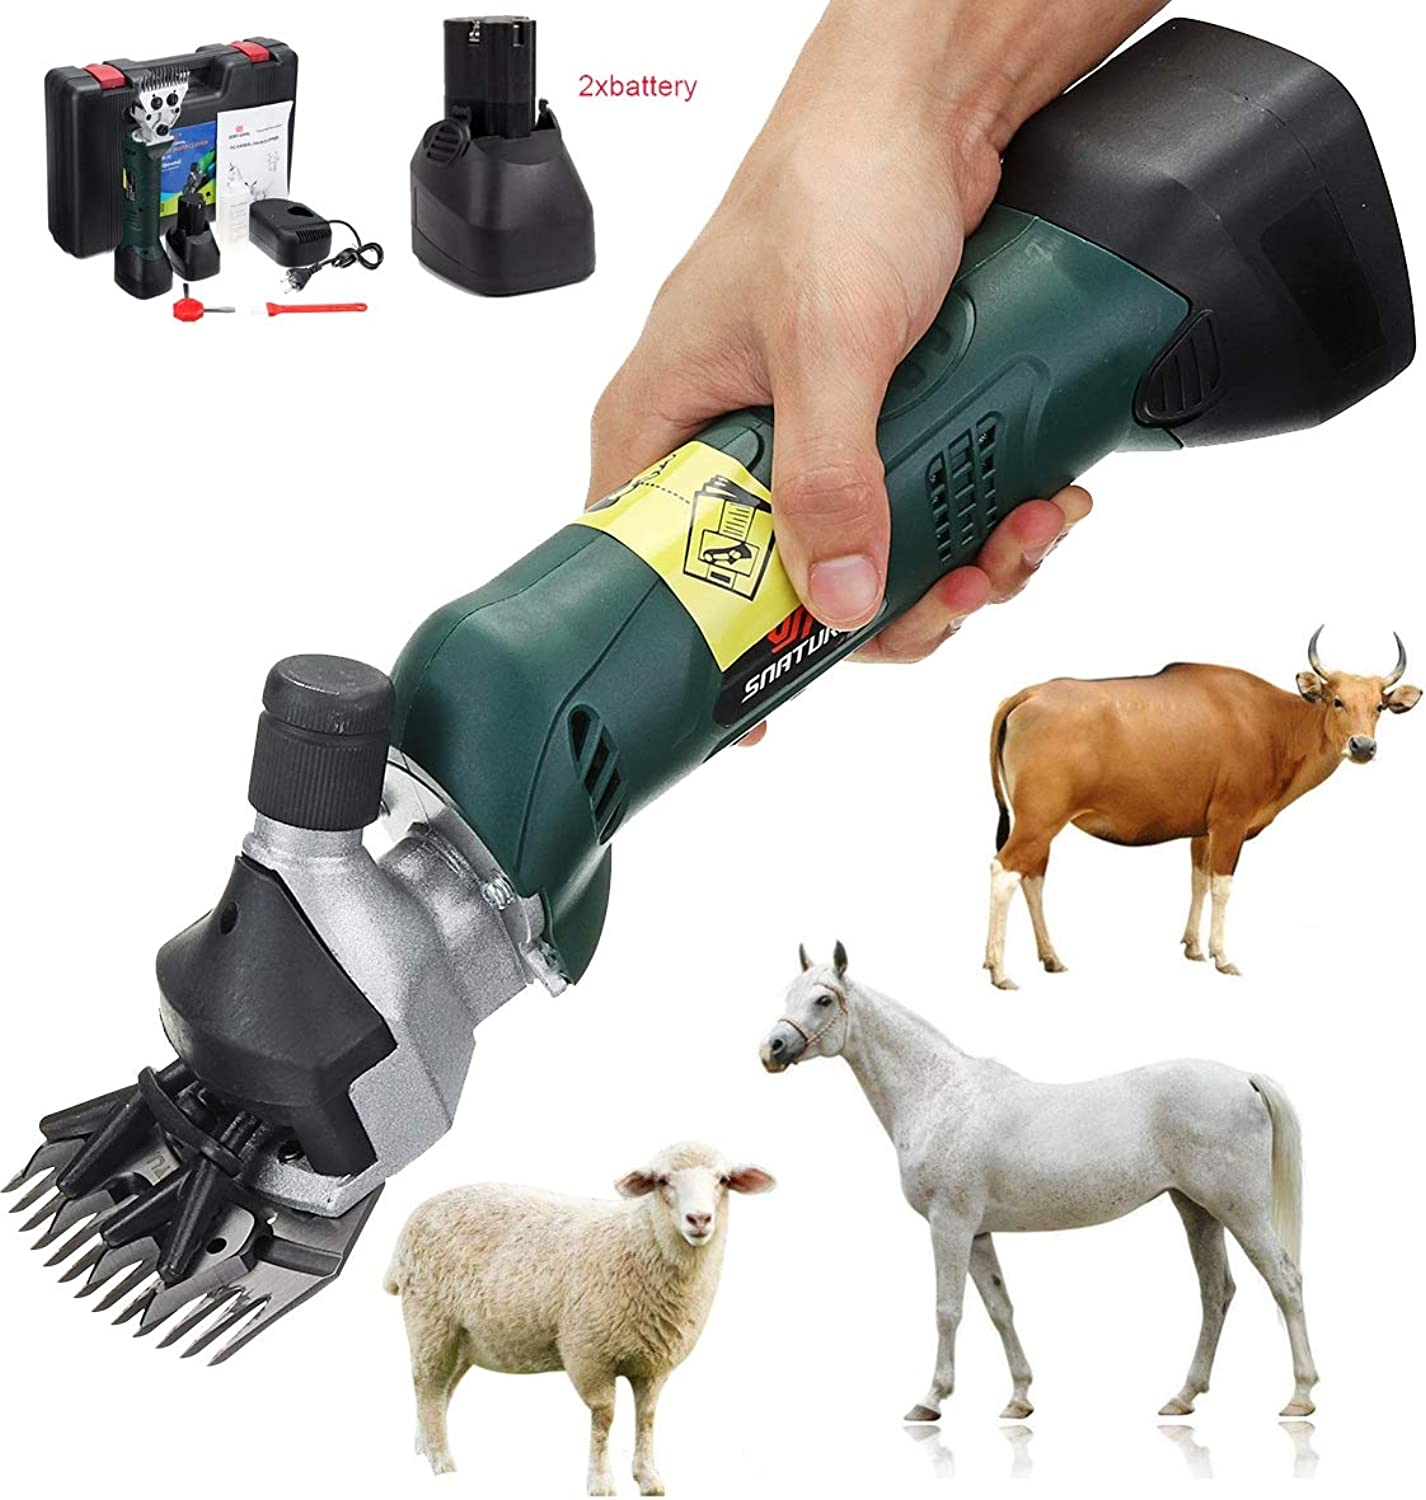 LIJUEZL 12V 200W Cordless Electric Shearing Clipper with 2 pcs Battery  Wool Electric Sheep Shearing for Farm Livestock Pet Supplies Grooming